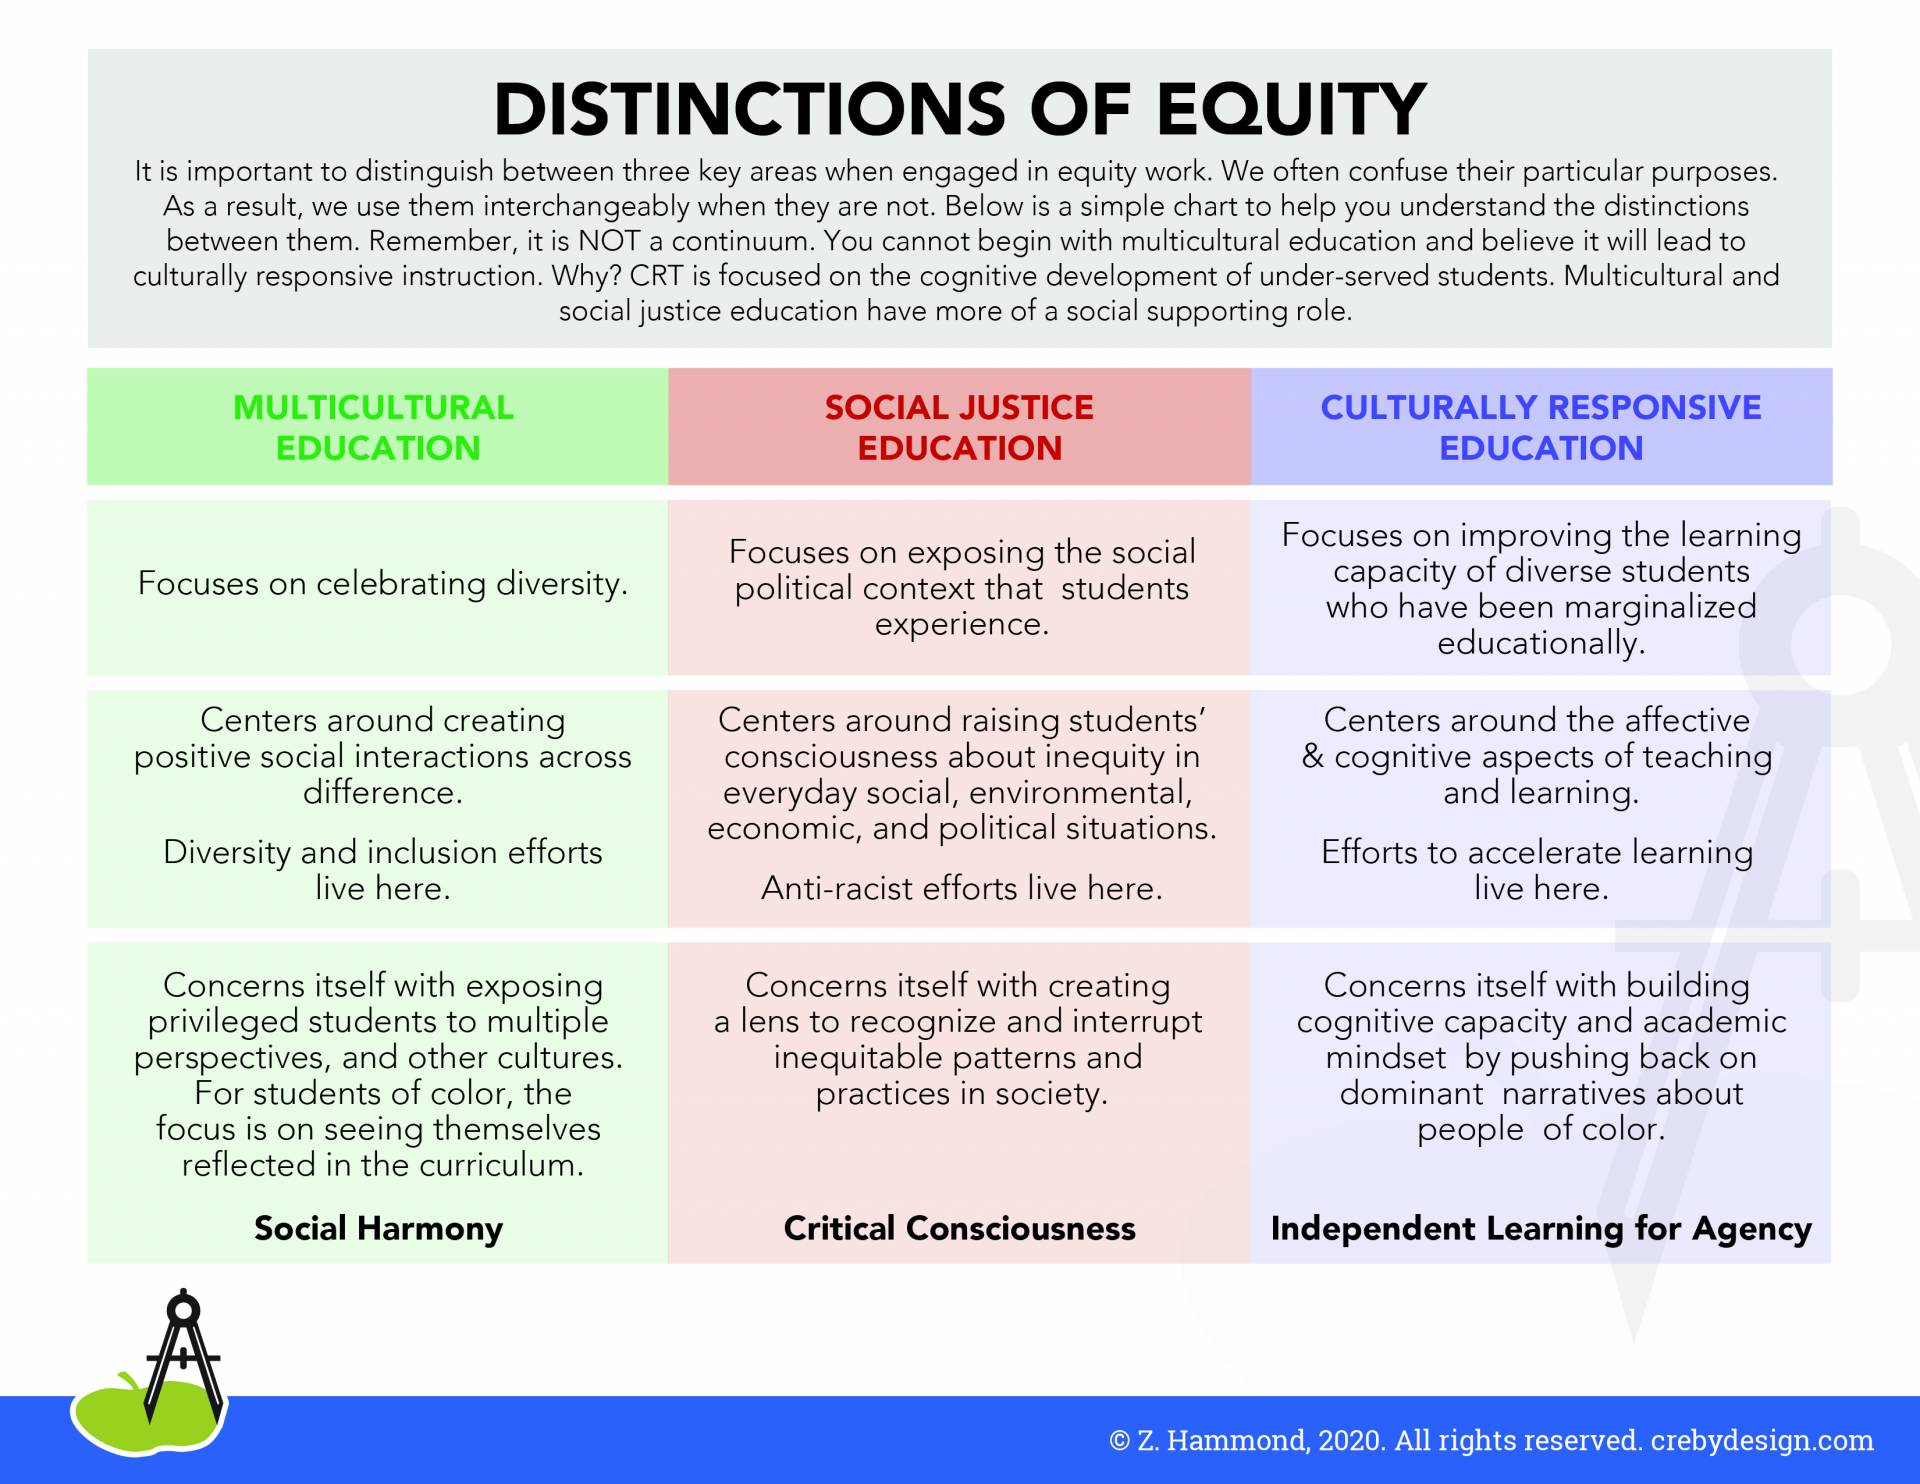 Distinctions-of-Equity_2020_color-e1589955039436.jpg